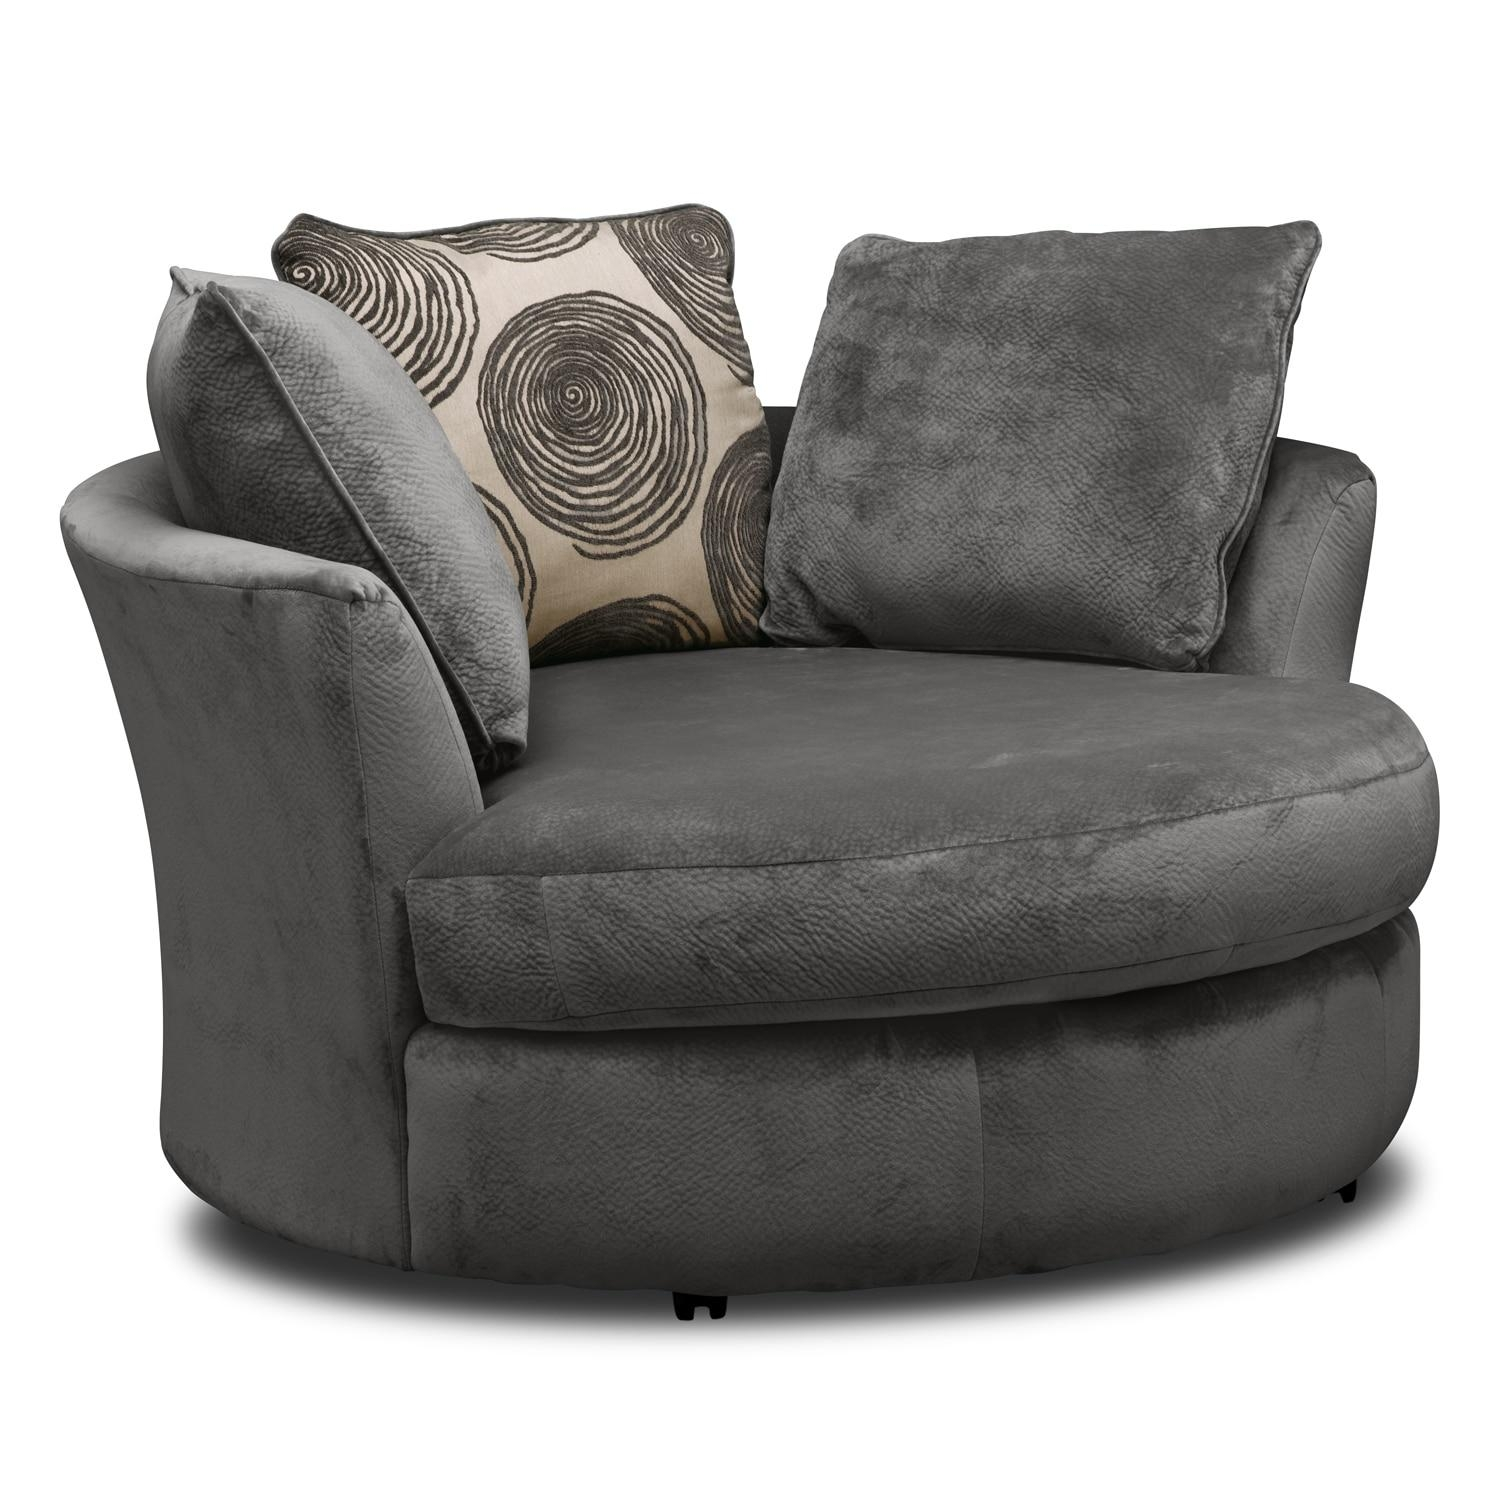 20 Top Sofa Loveseat and Chairs  Sofa Ideas